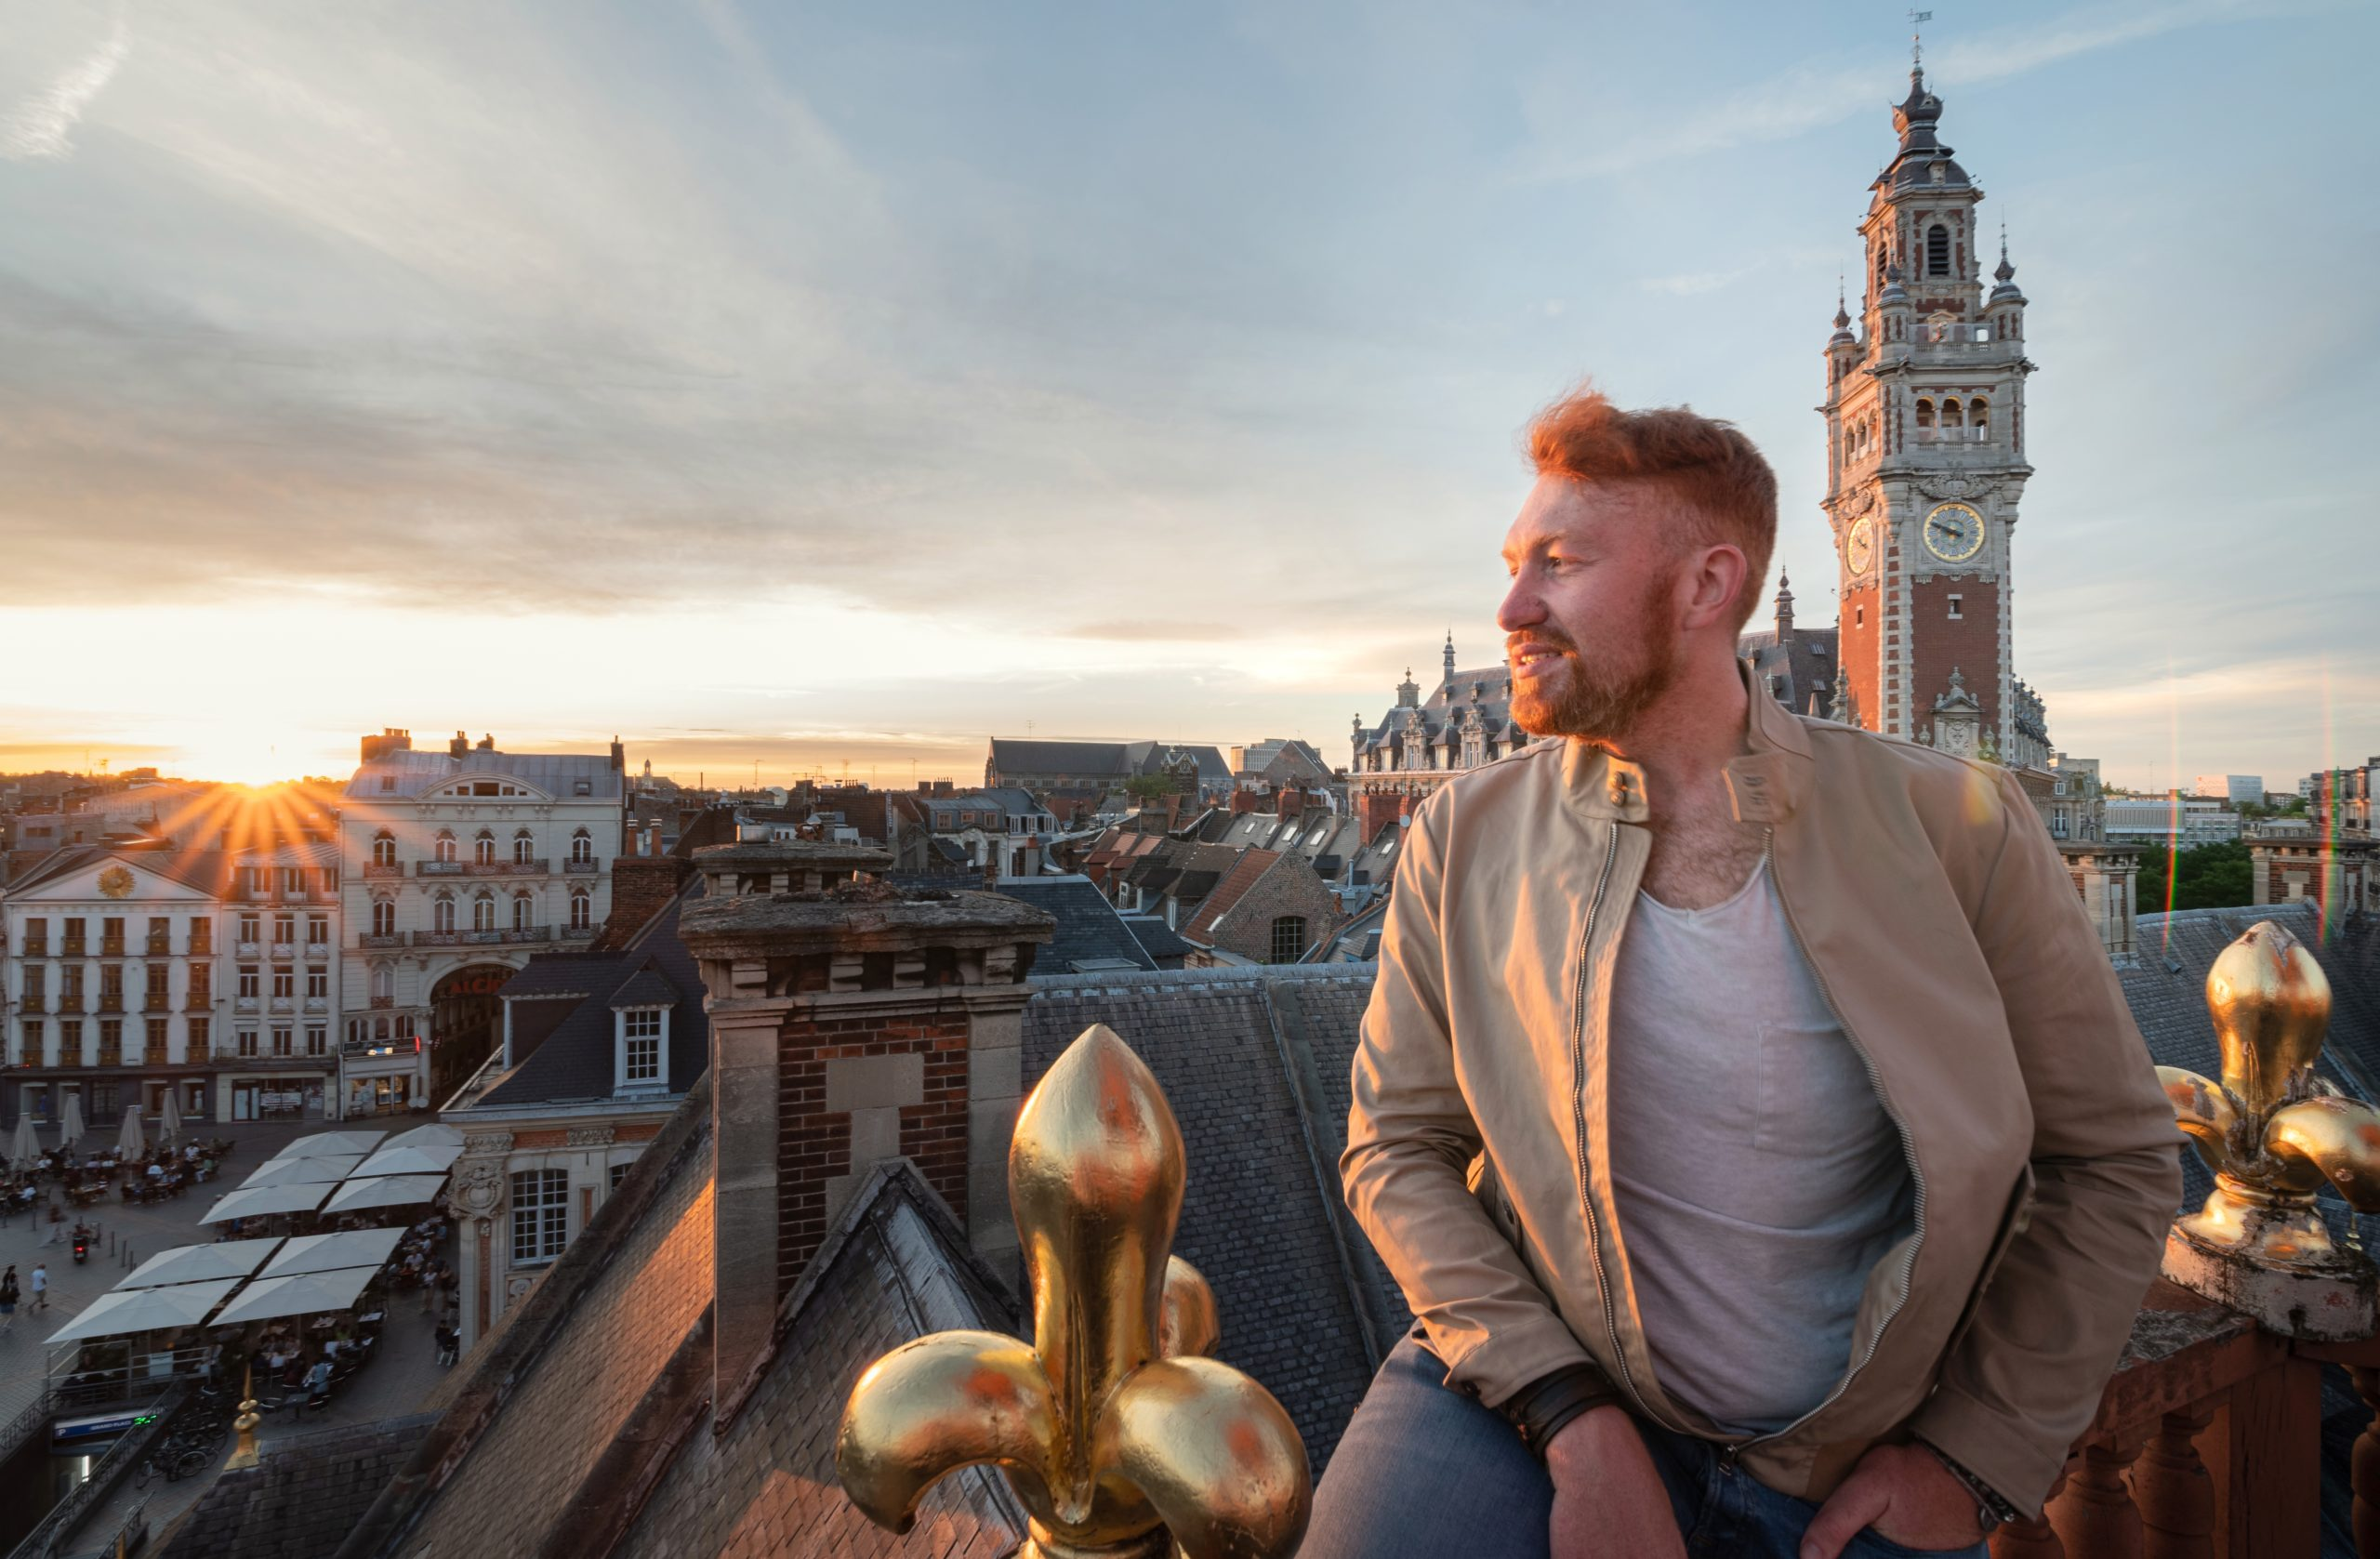 photo-pierre-cottret-tradibalade-vieille-bourse-sunset-grand-place-lille